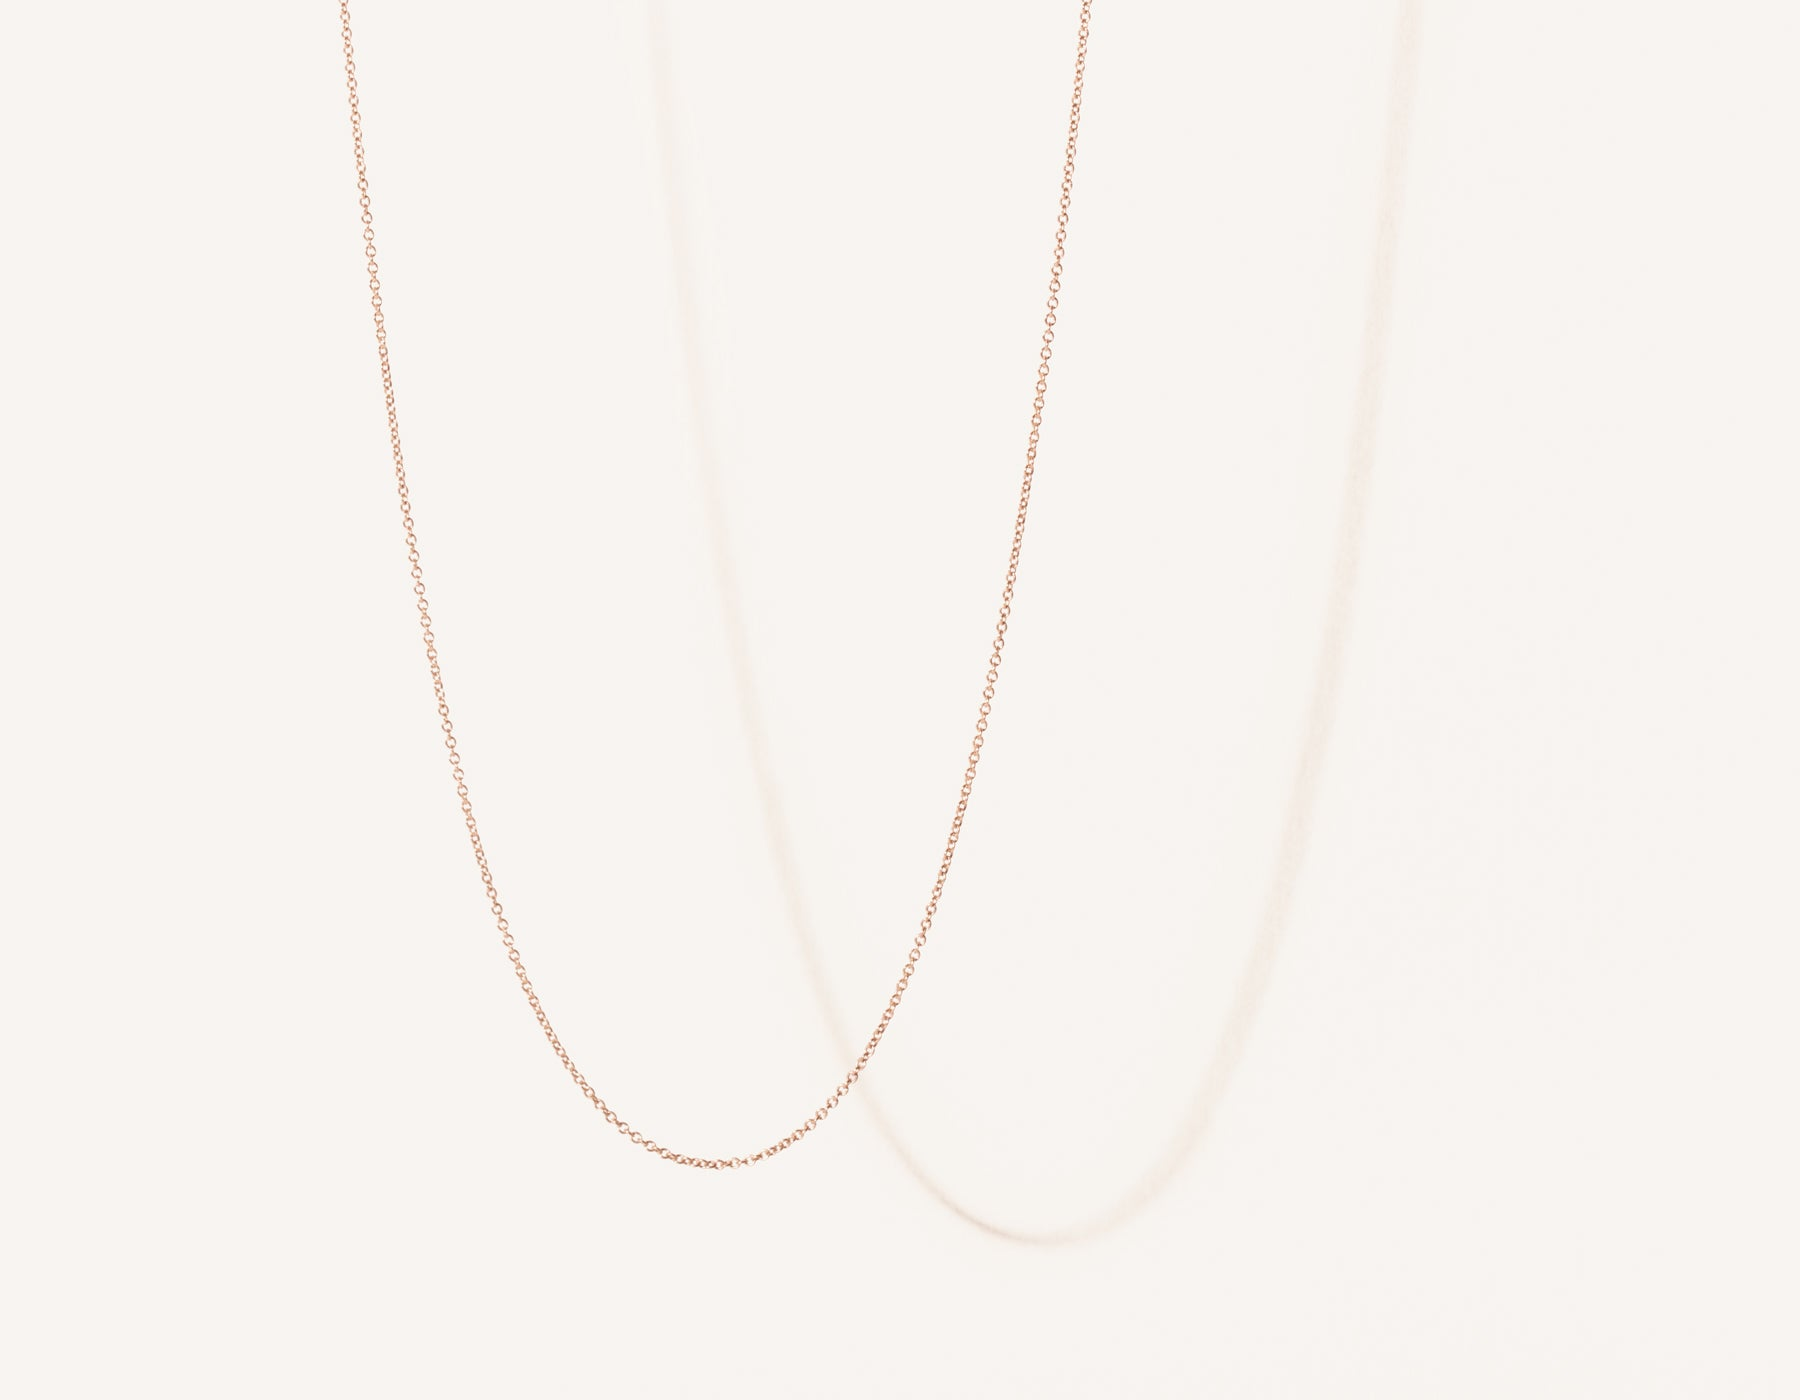 Modern minimalist thin Oval Link Chain necklace in 14k solid gold by Vrai and Oro jewelry, 14K Rose Gold